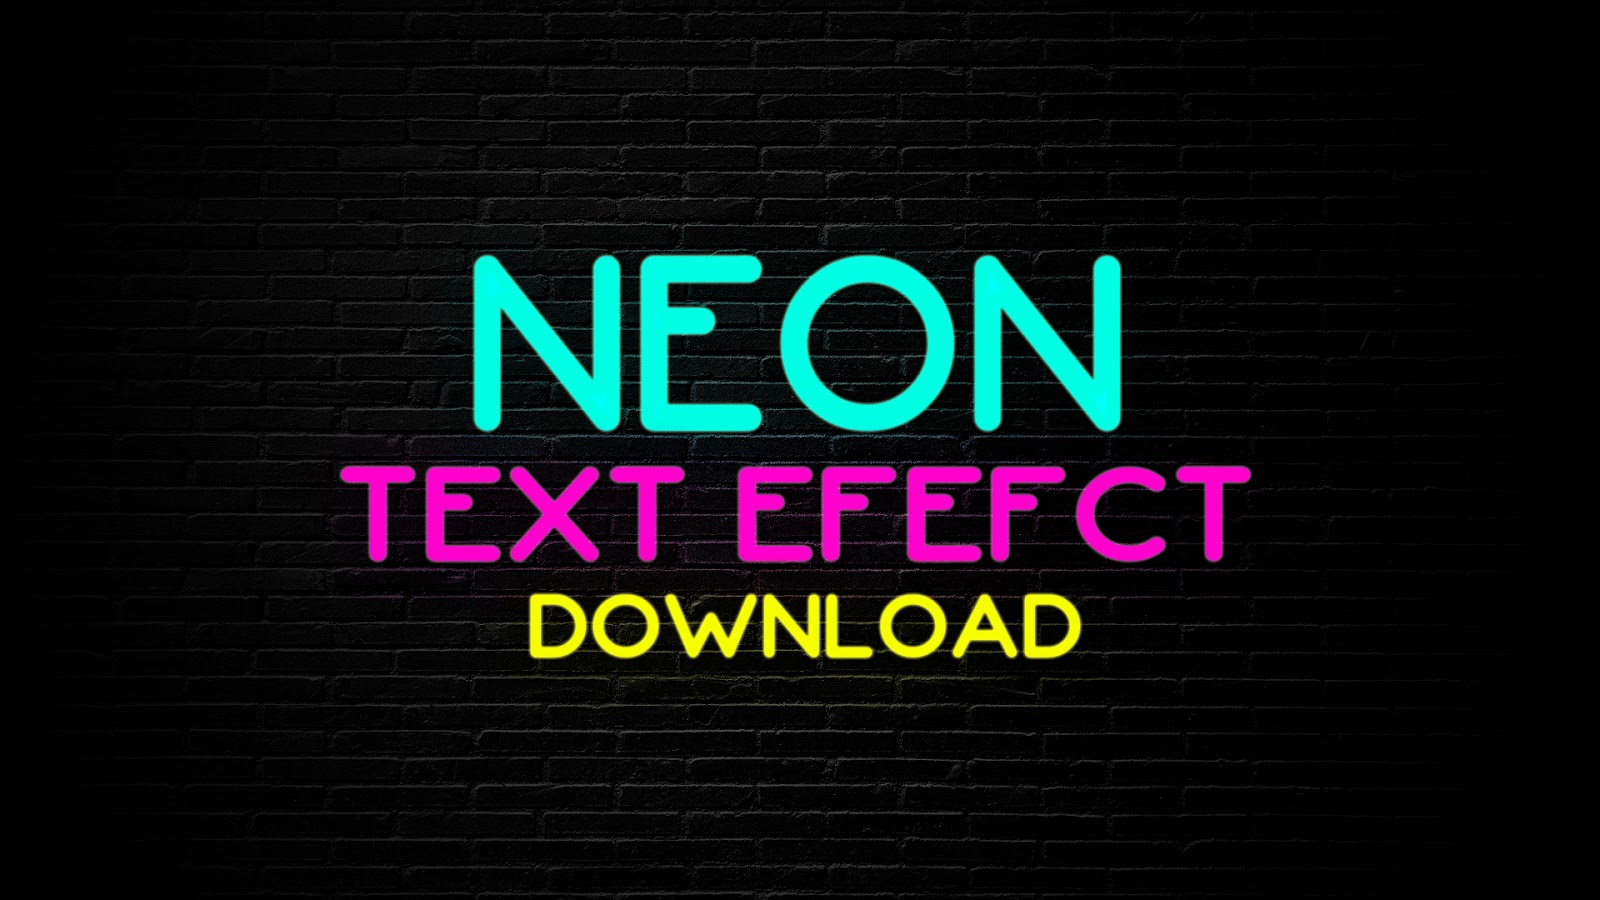 Download NEON TEXT EFFECT PACK | WONDERSHARE FILMORA 9 | FREE ...